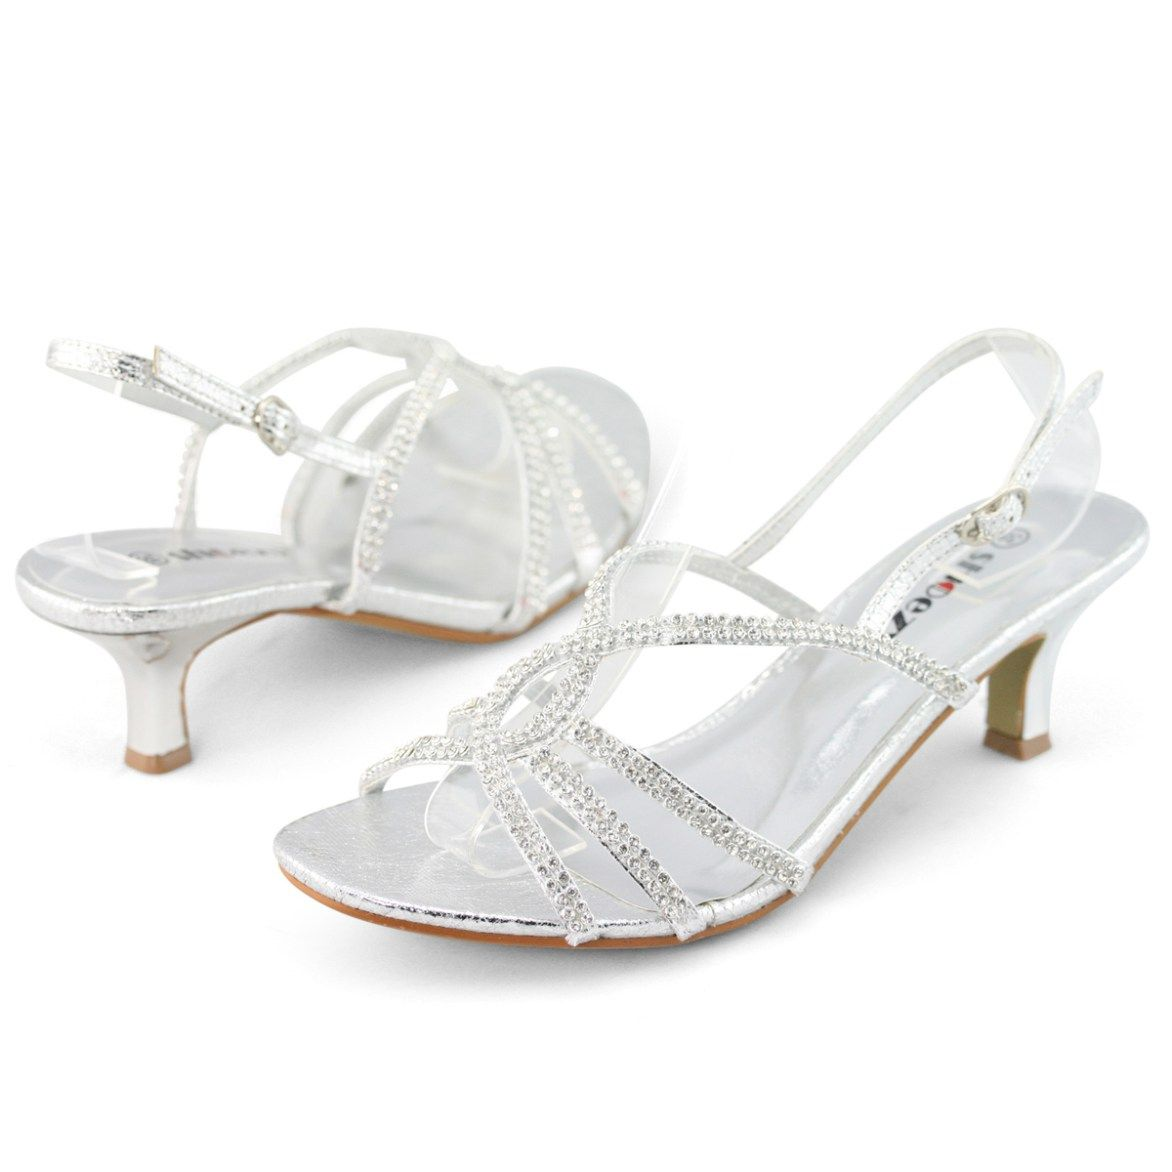 40 Low Heel Silver Wedding Shoes For Your Stunning Style Fashion And Wedding Wedding Shoes Heels Silver Wedding Shoes Kitten Heels Wedding